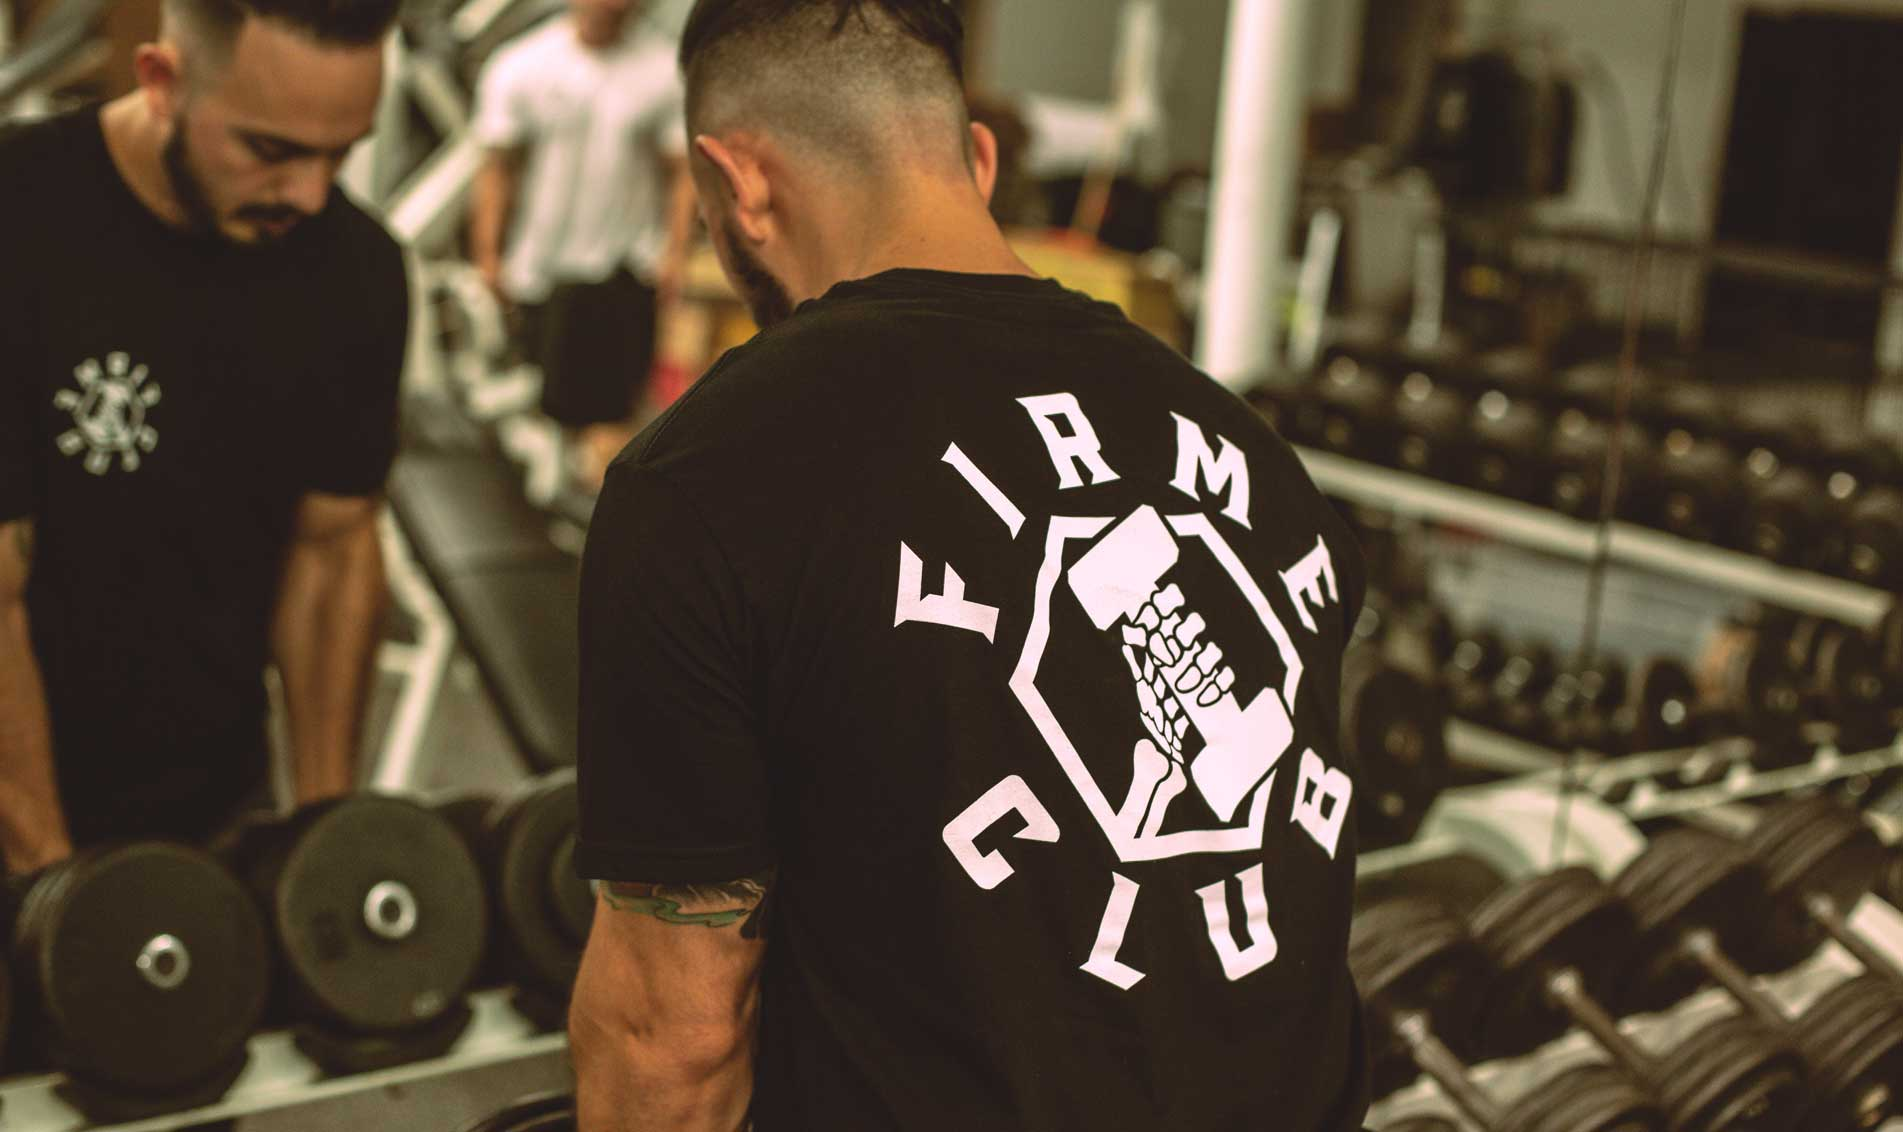 Alex wearing the Firme Club Federation Tee